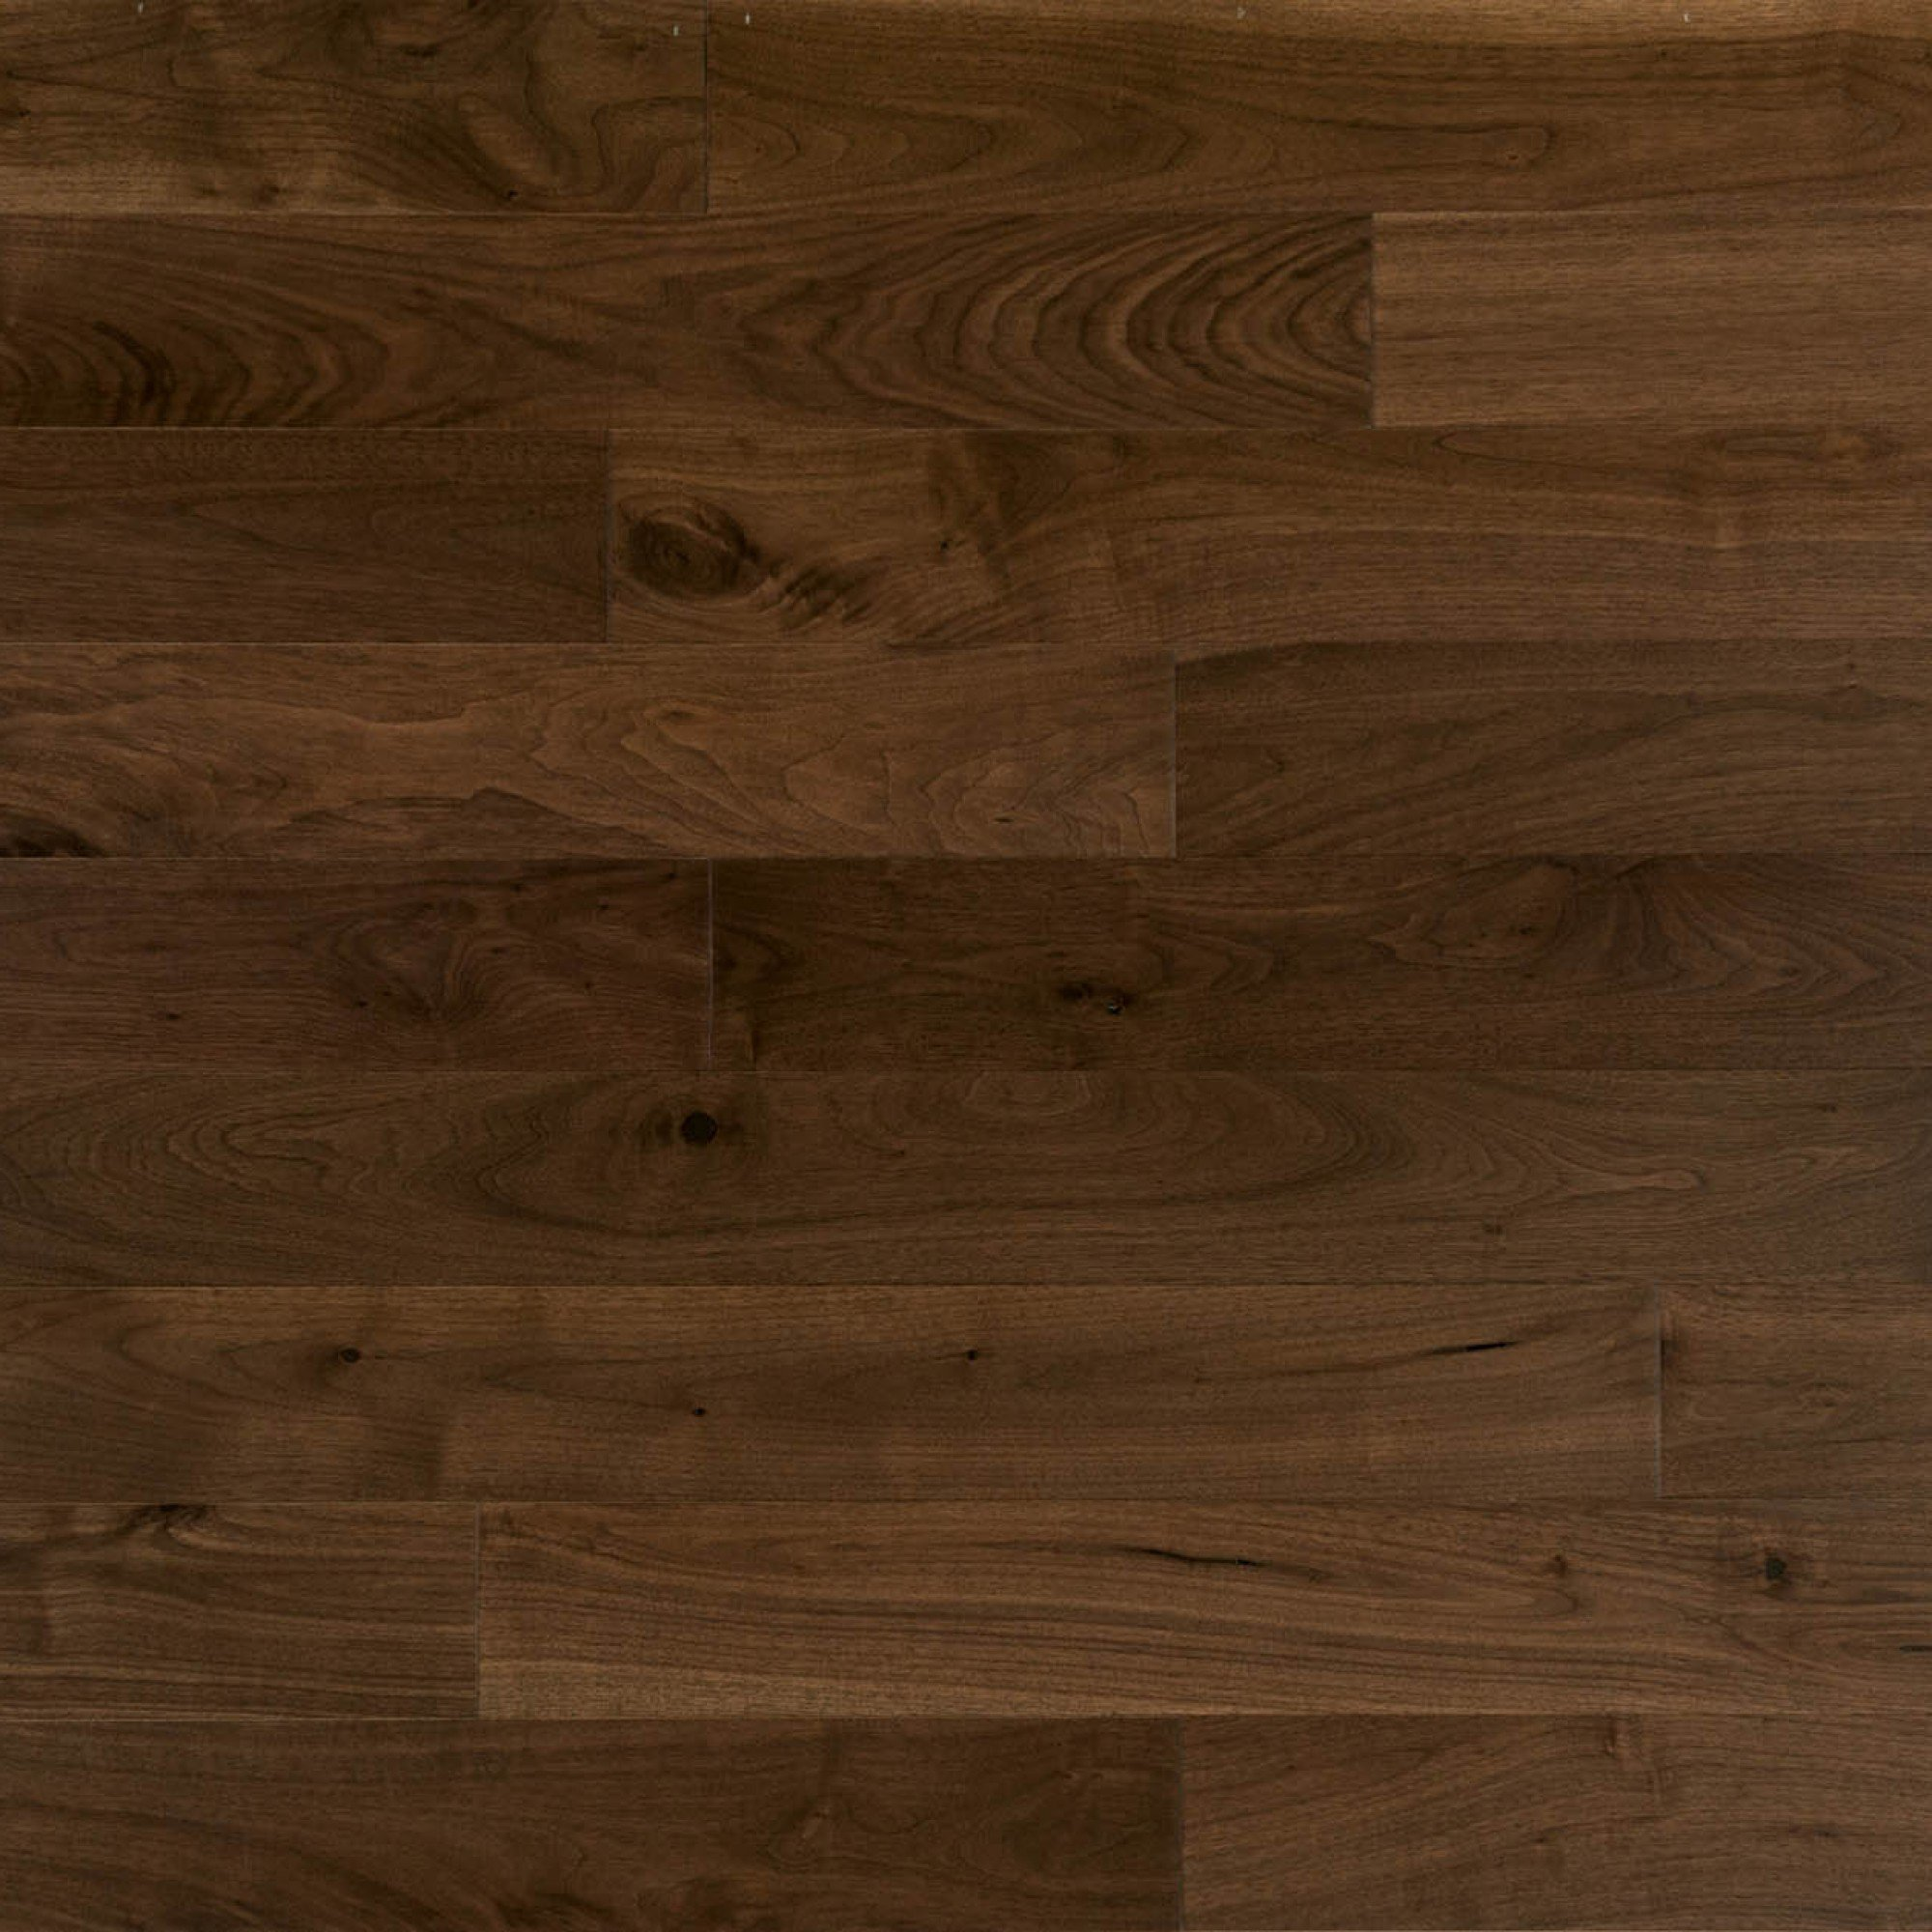 Walnut Savanna Character - Floor image